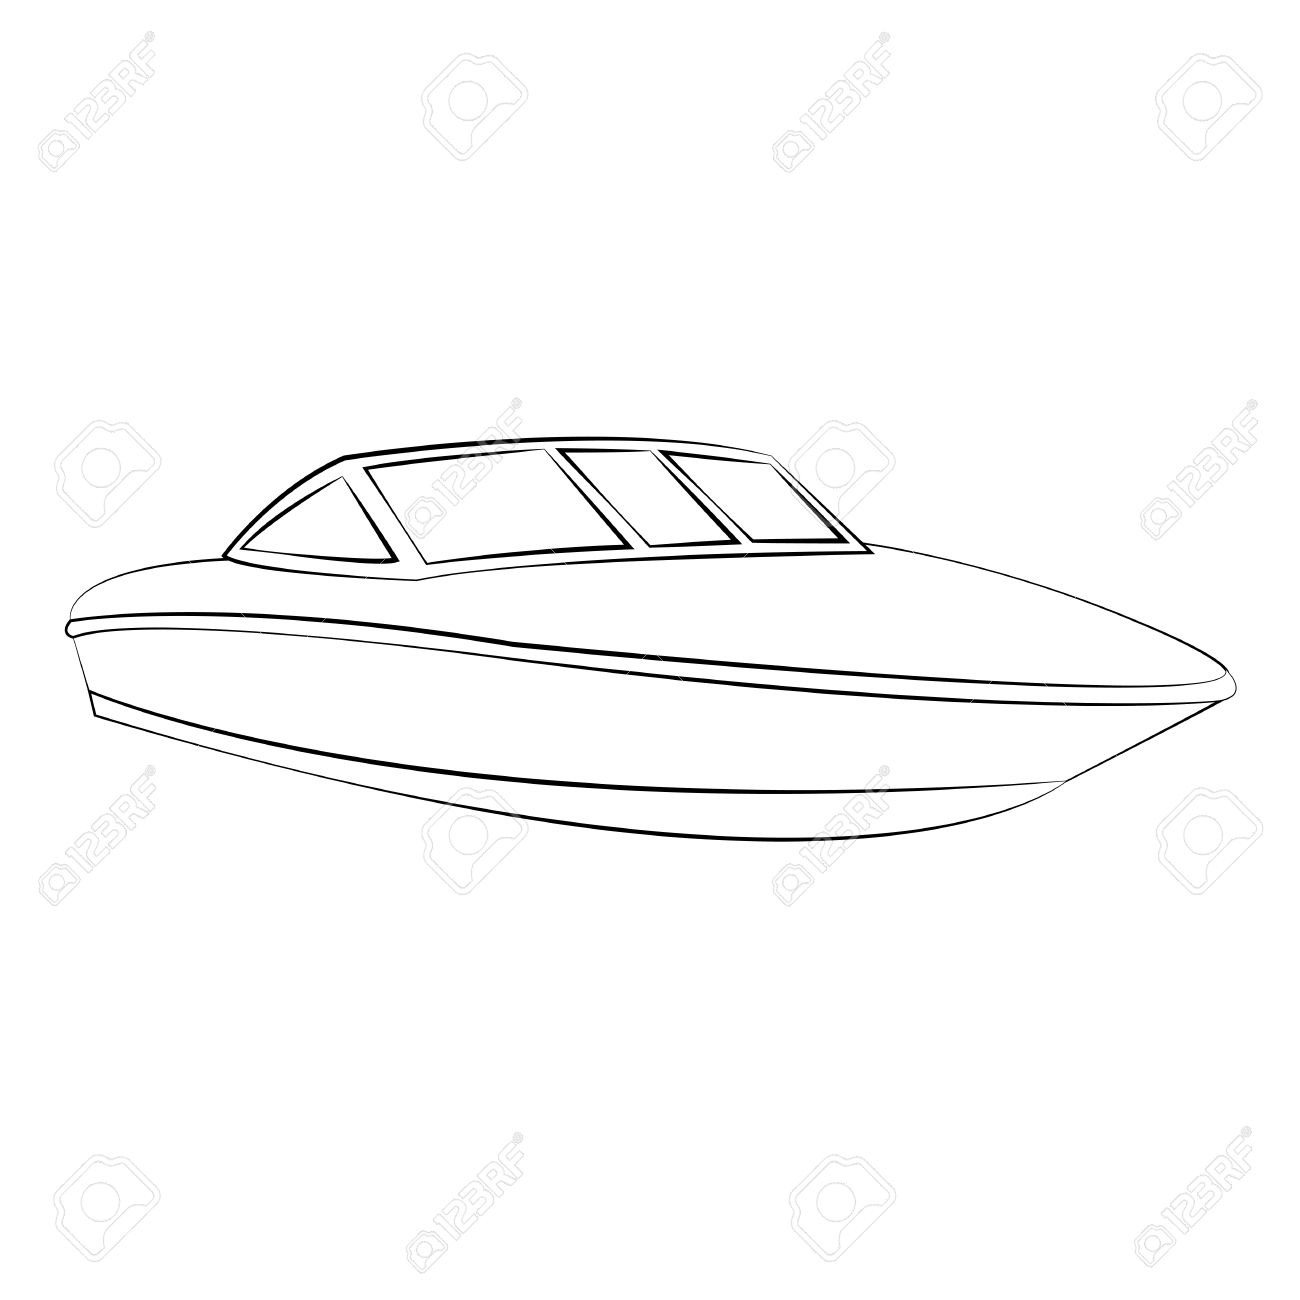 Black Outline Vector Boat On White Background. Royalty Free.